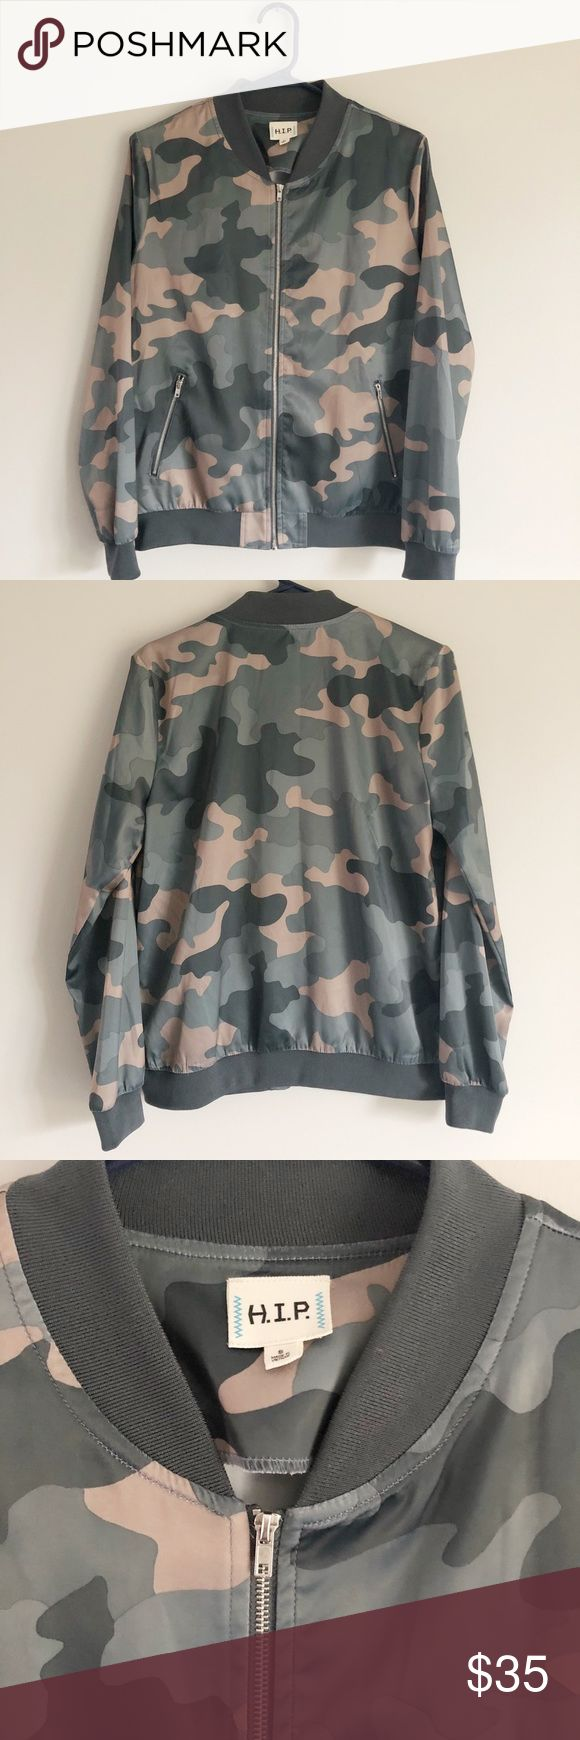 """H.I.P. Camo Bomber Jacket H.I.P. Camo Bomber Jacket with zip front. Great condition, small snag and wear on right cuff but otherwise in excellent, like new condition. Originally purchased at Nordstrom.  Fabric Content: 97% Polyester 3% Spandex Length: 24"""" Width: 19"""" Sleeve Length: 23.5"""" H.I.P. Jackets & Coats"""